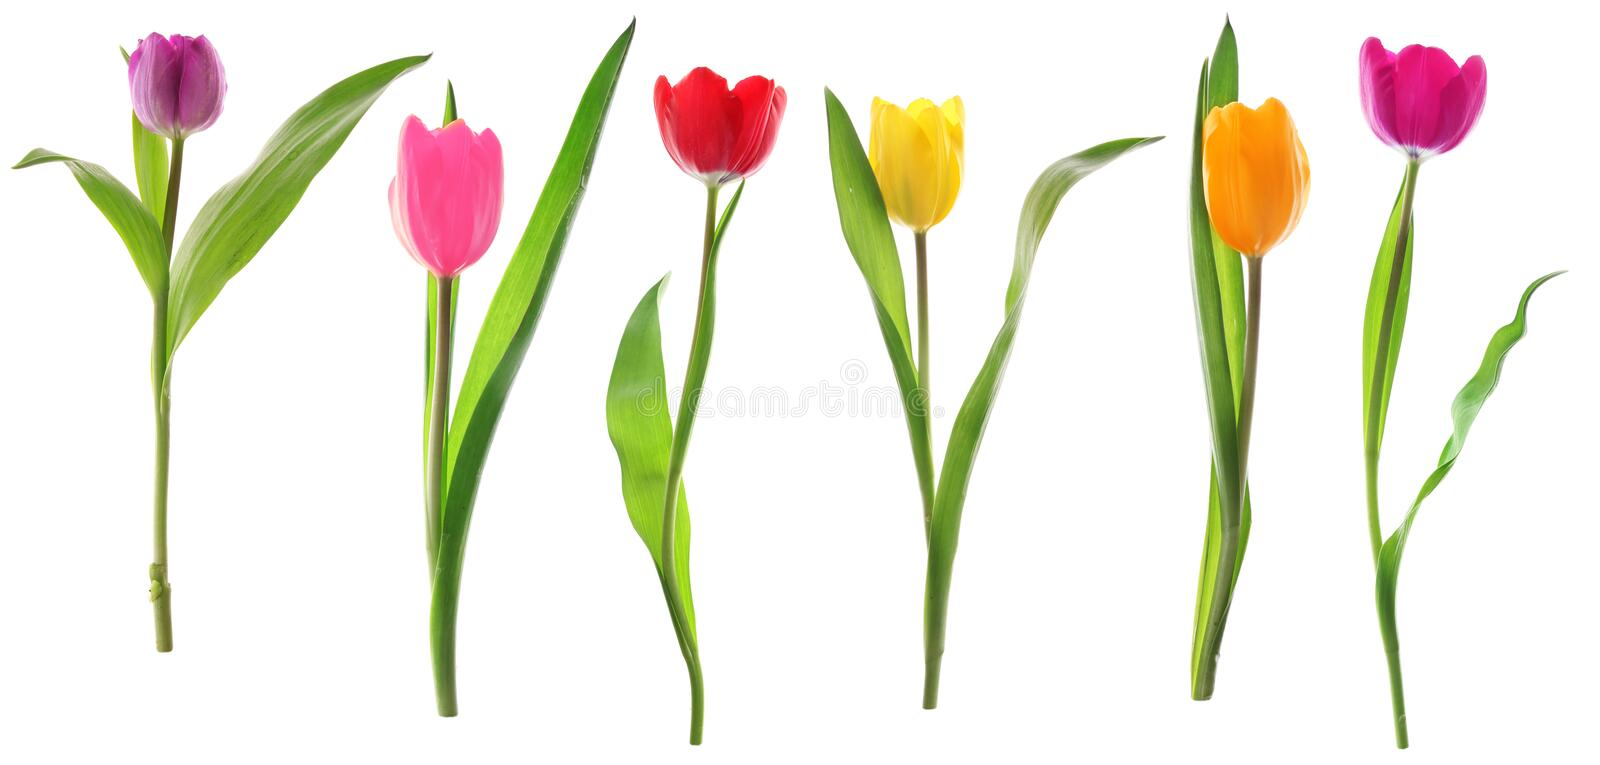 Spring Tulip Flowers In A Row Isolated On White Royalty Free Stock Photography